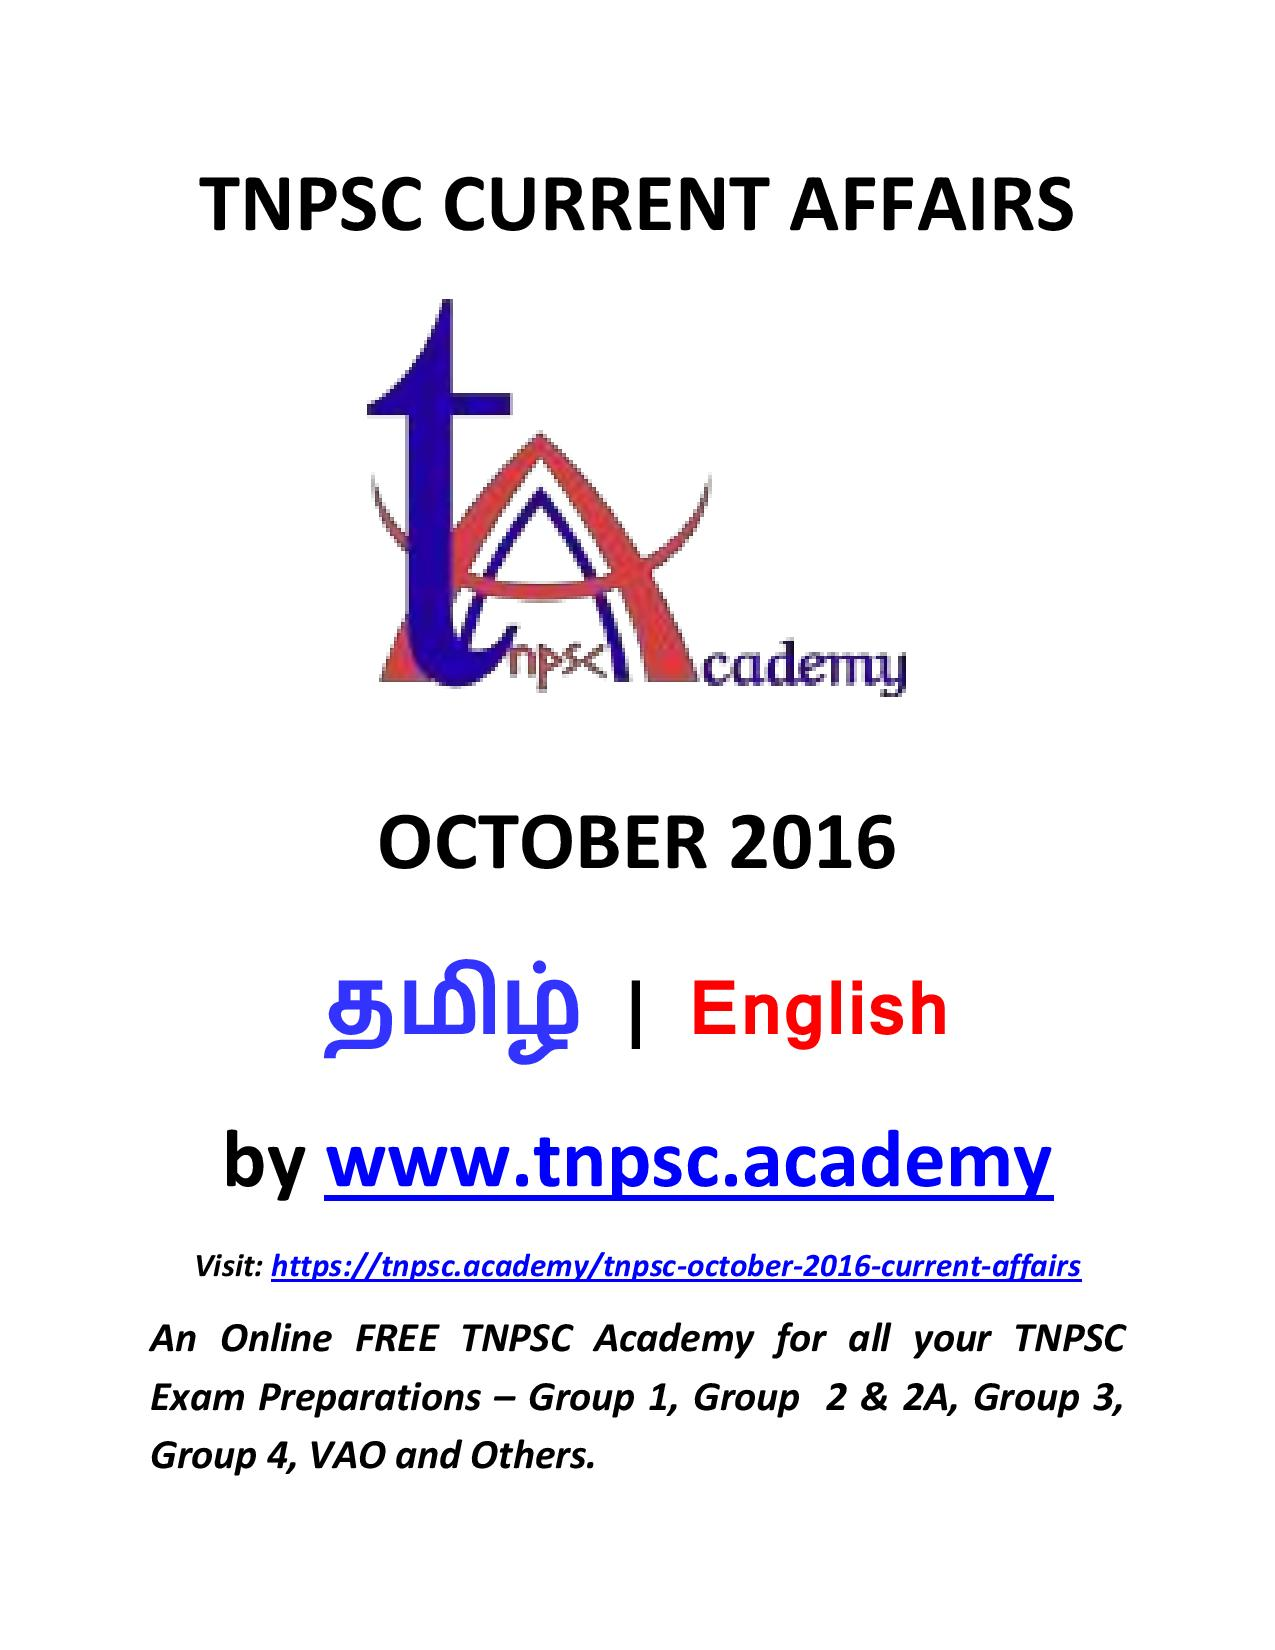 TNPSC October 2016 Current Affairs-page-001